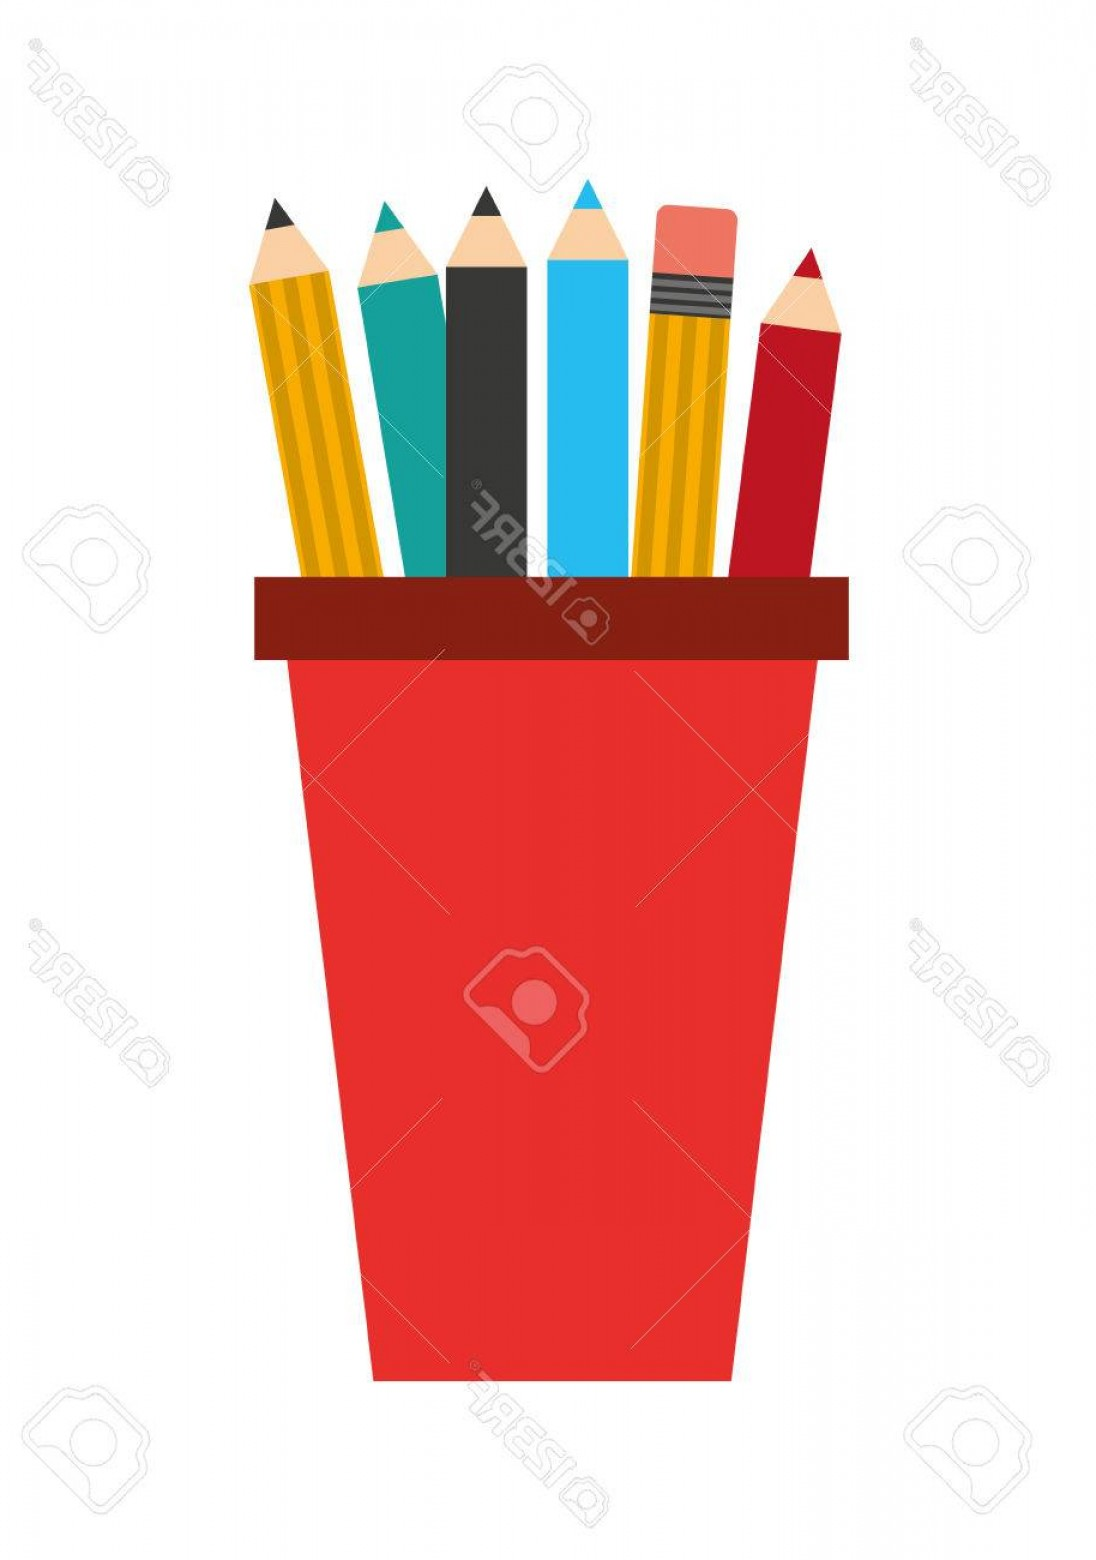 Vector Pencil Holder: Photostock Vector Pencil Holders Isolated Icon Design Vector Illustration Graphic